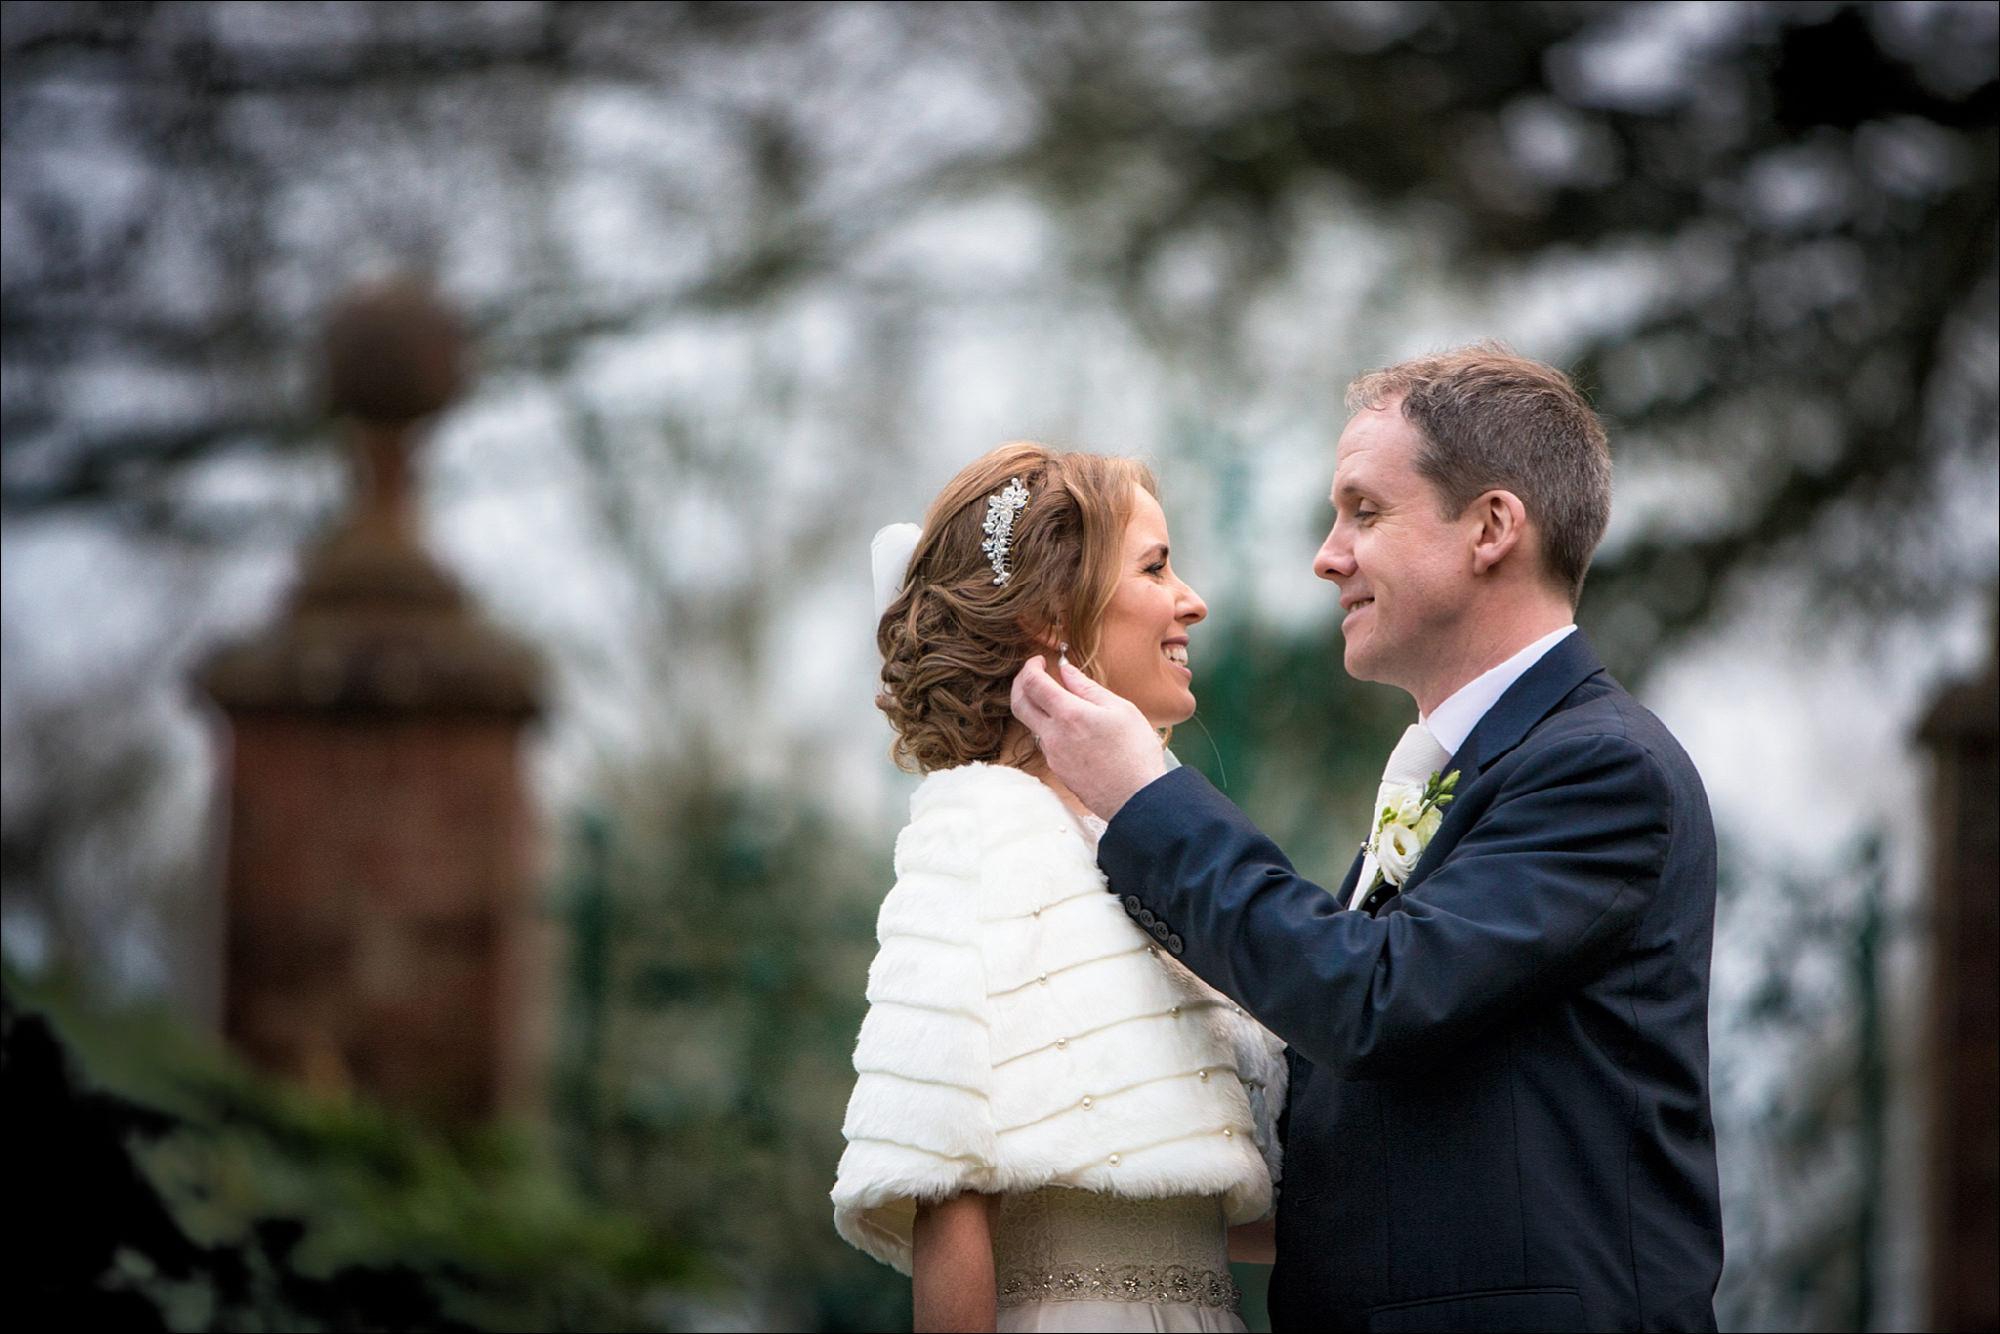 dublin wedding photographer david duignan photography tankardstown weddings slane rathfeigh church ireland 0034